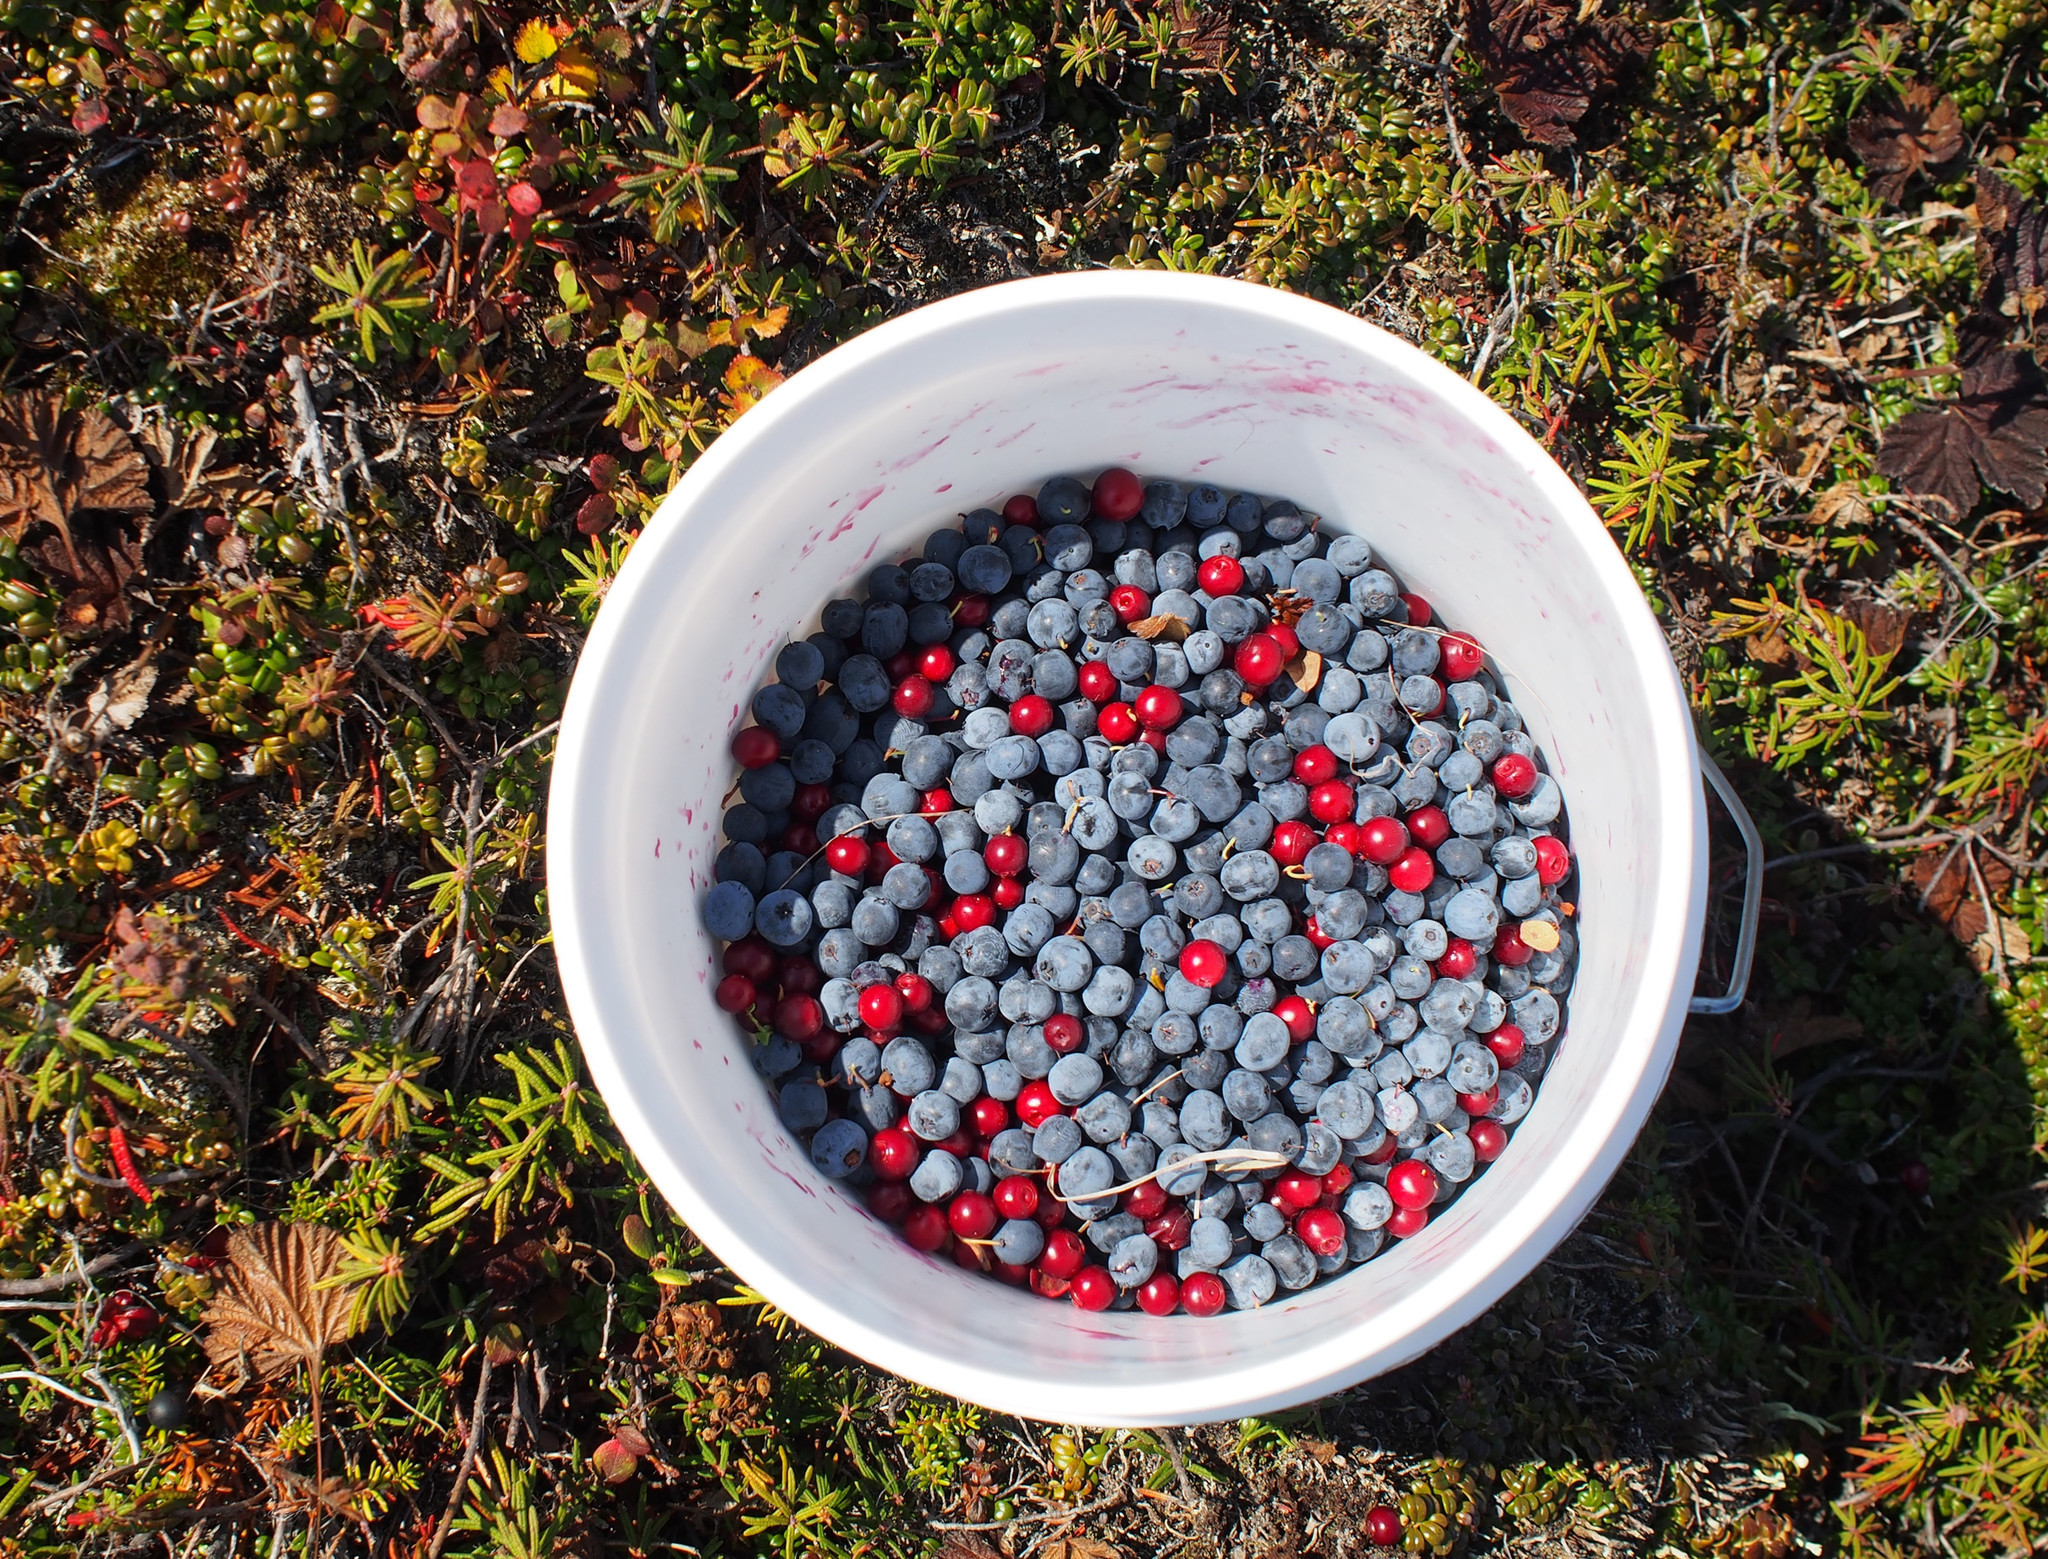 A half full berry bucket.